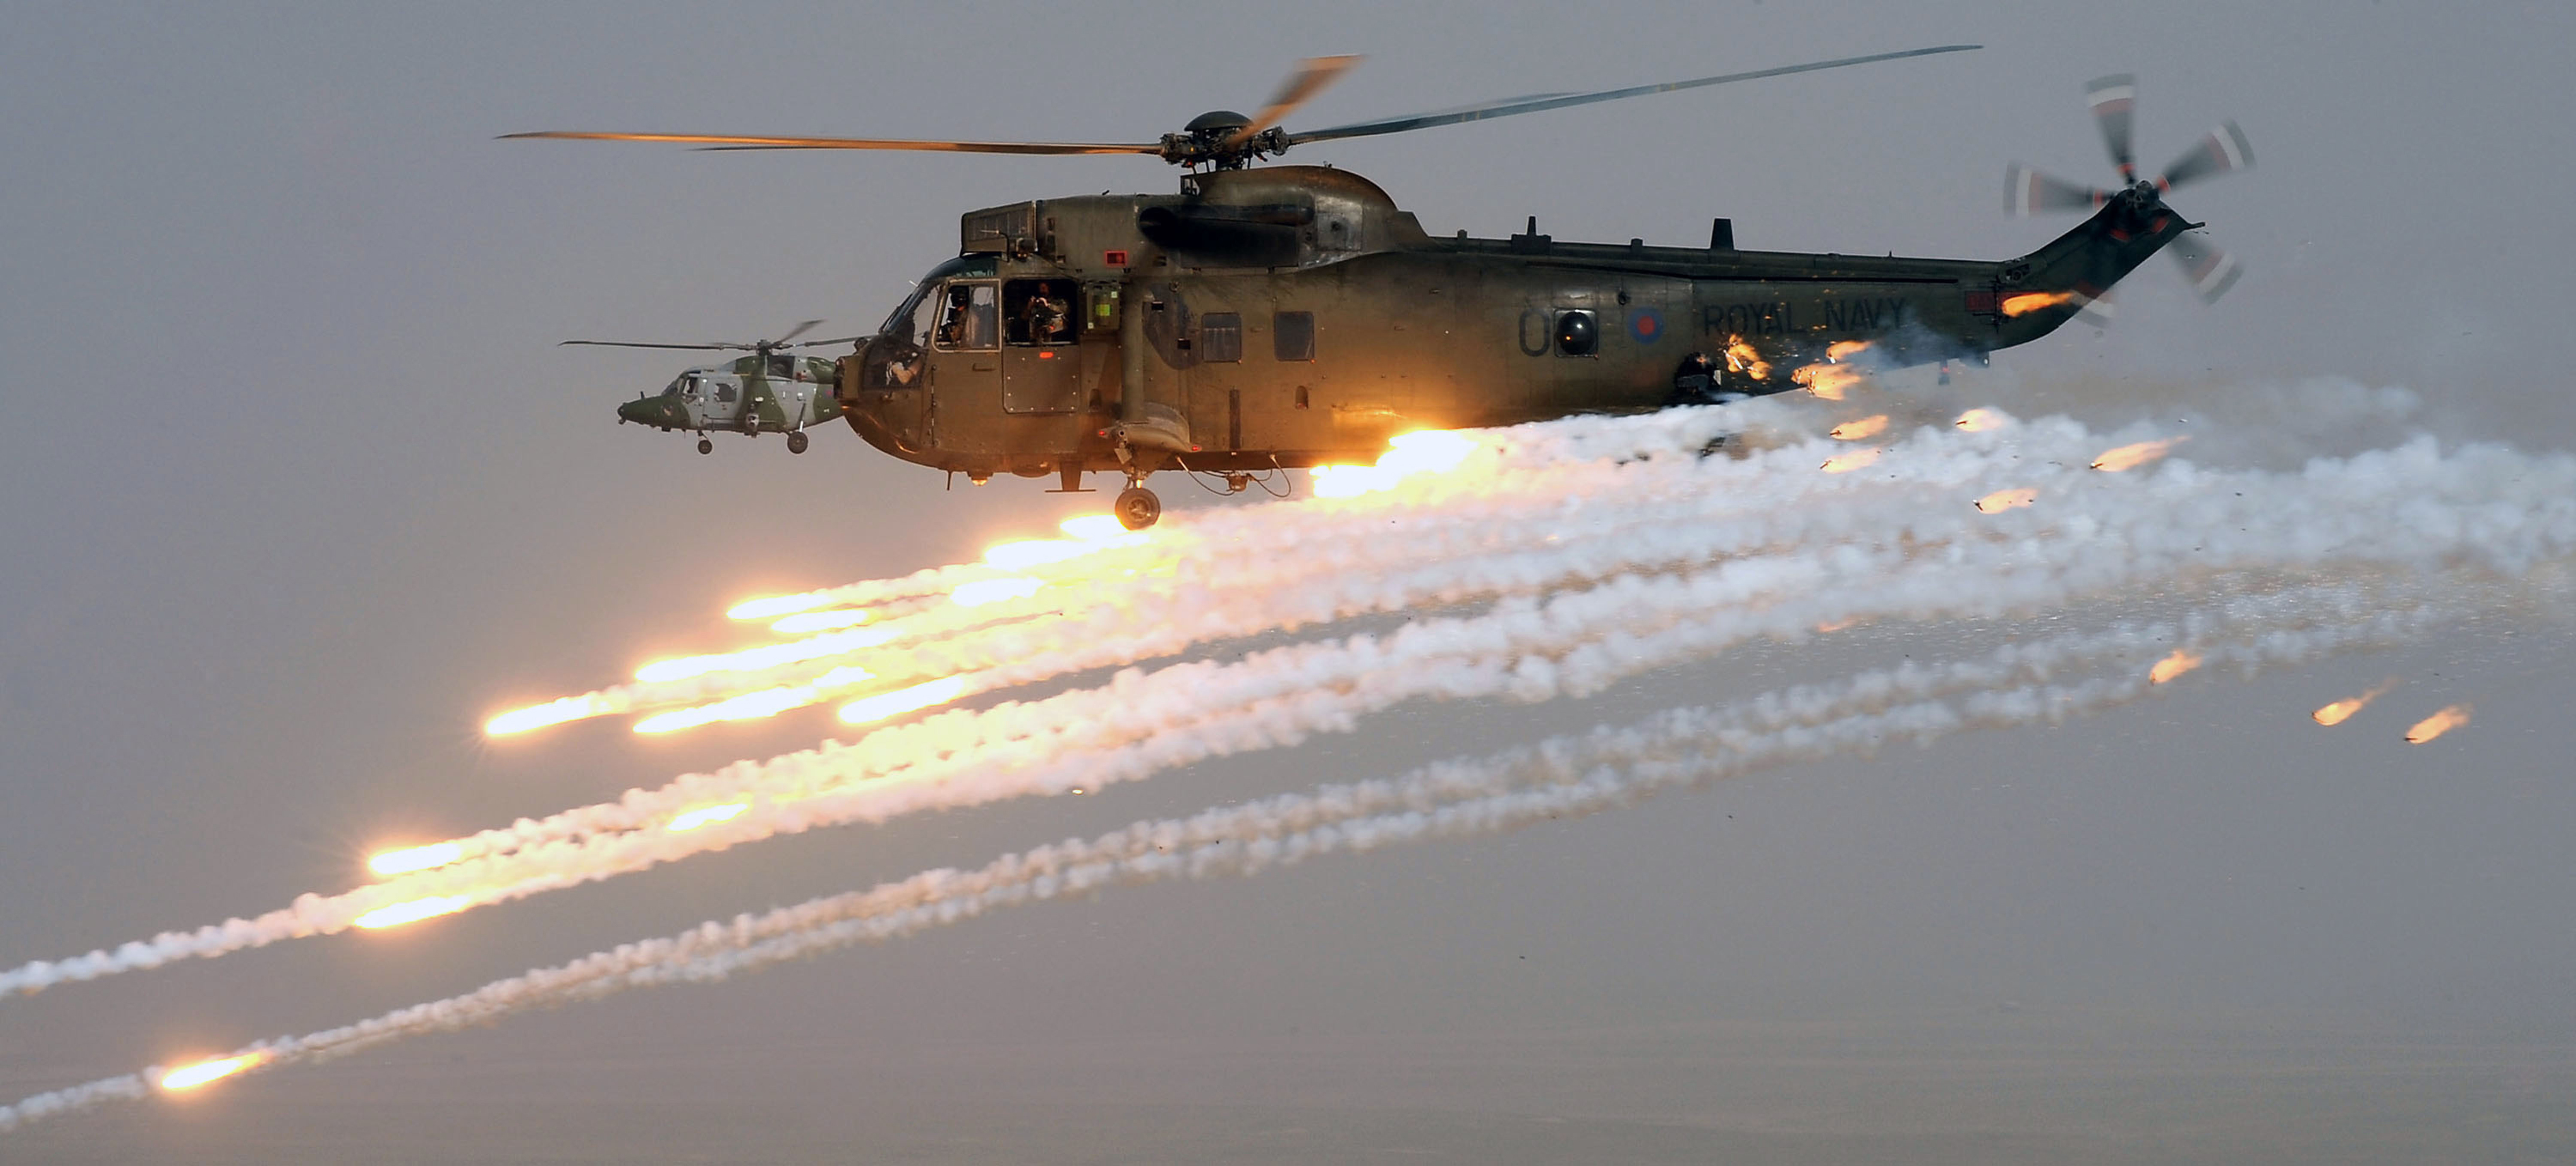 flying helicopters with File Royal Navy Sea King Mk 4 Helicopter Firing Decoy Flares In Afghanistan Mod 45154056 on NR 26093 additionally Piasecki HRP Rescuer further Why Was The Bell Boeing V 22 Osprey Not Worked On More as well Stock Photo Westland Sea King Xv663 Helicopter Cockpit And Controls 54660720 together with File Army Air Corps Apache Attack Helicopter MOD 45155704.